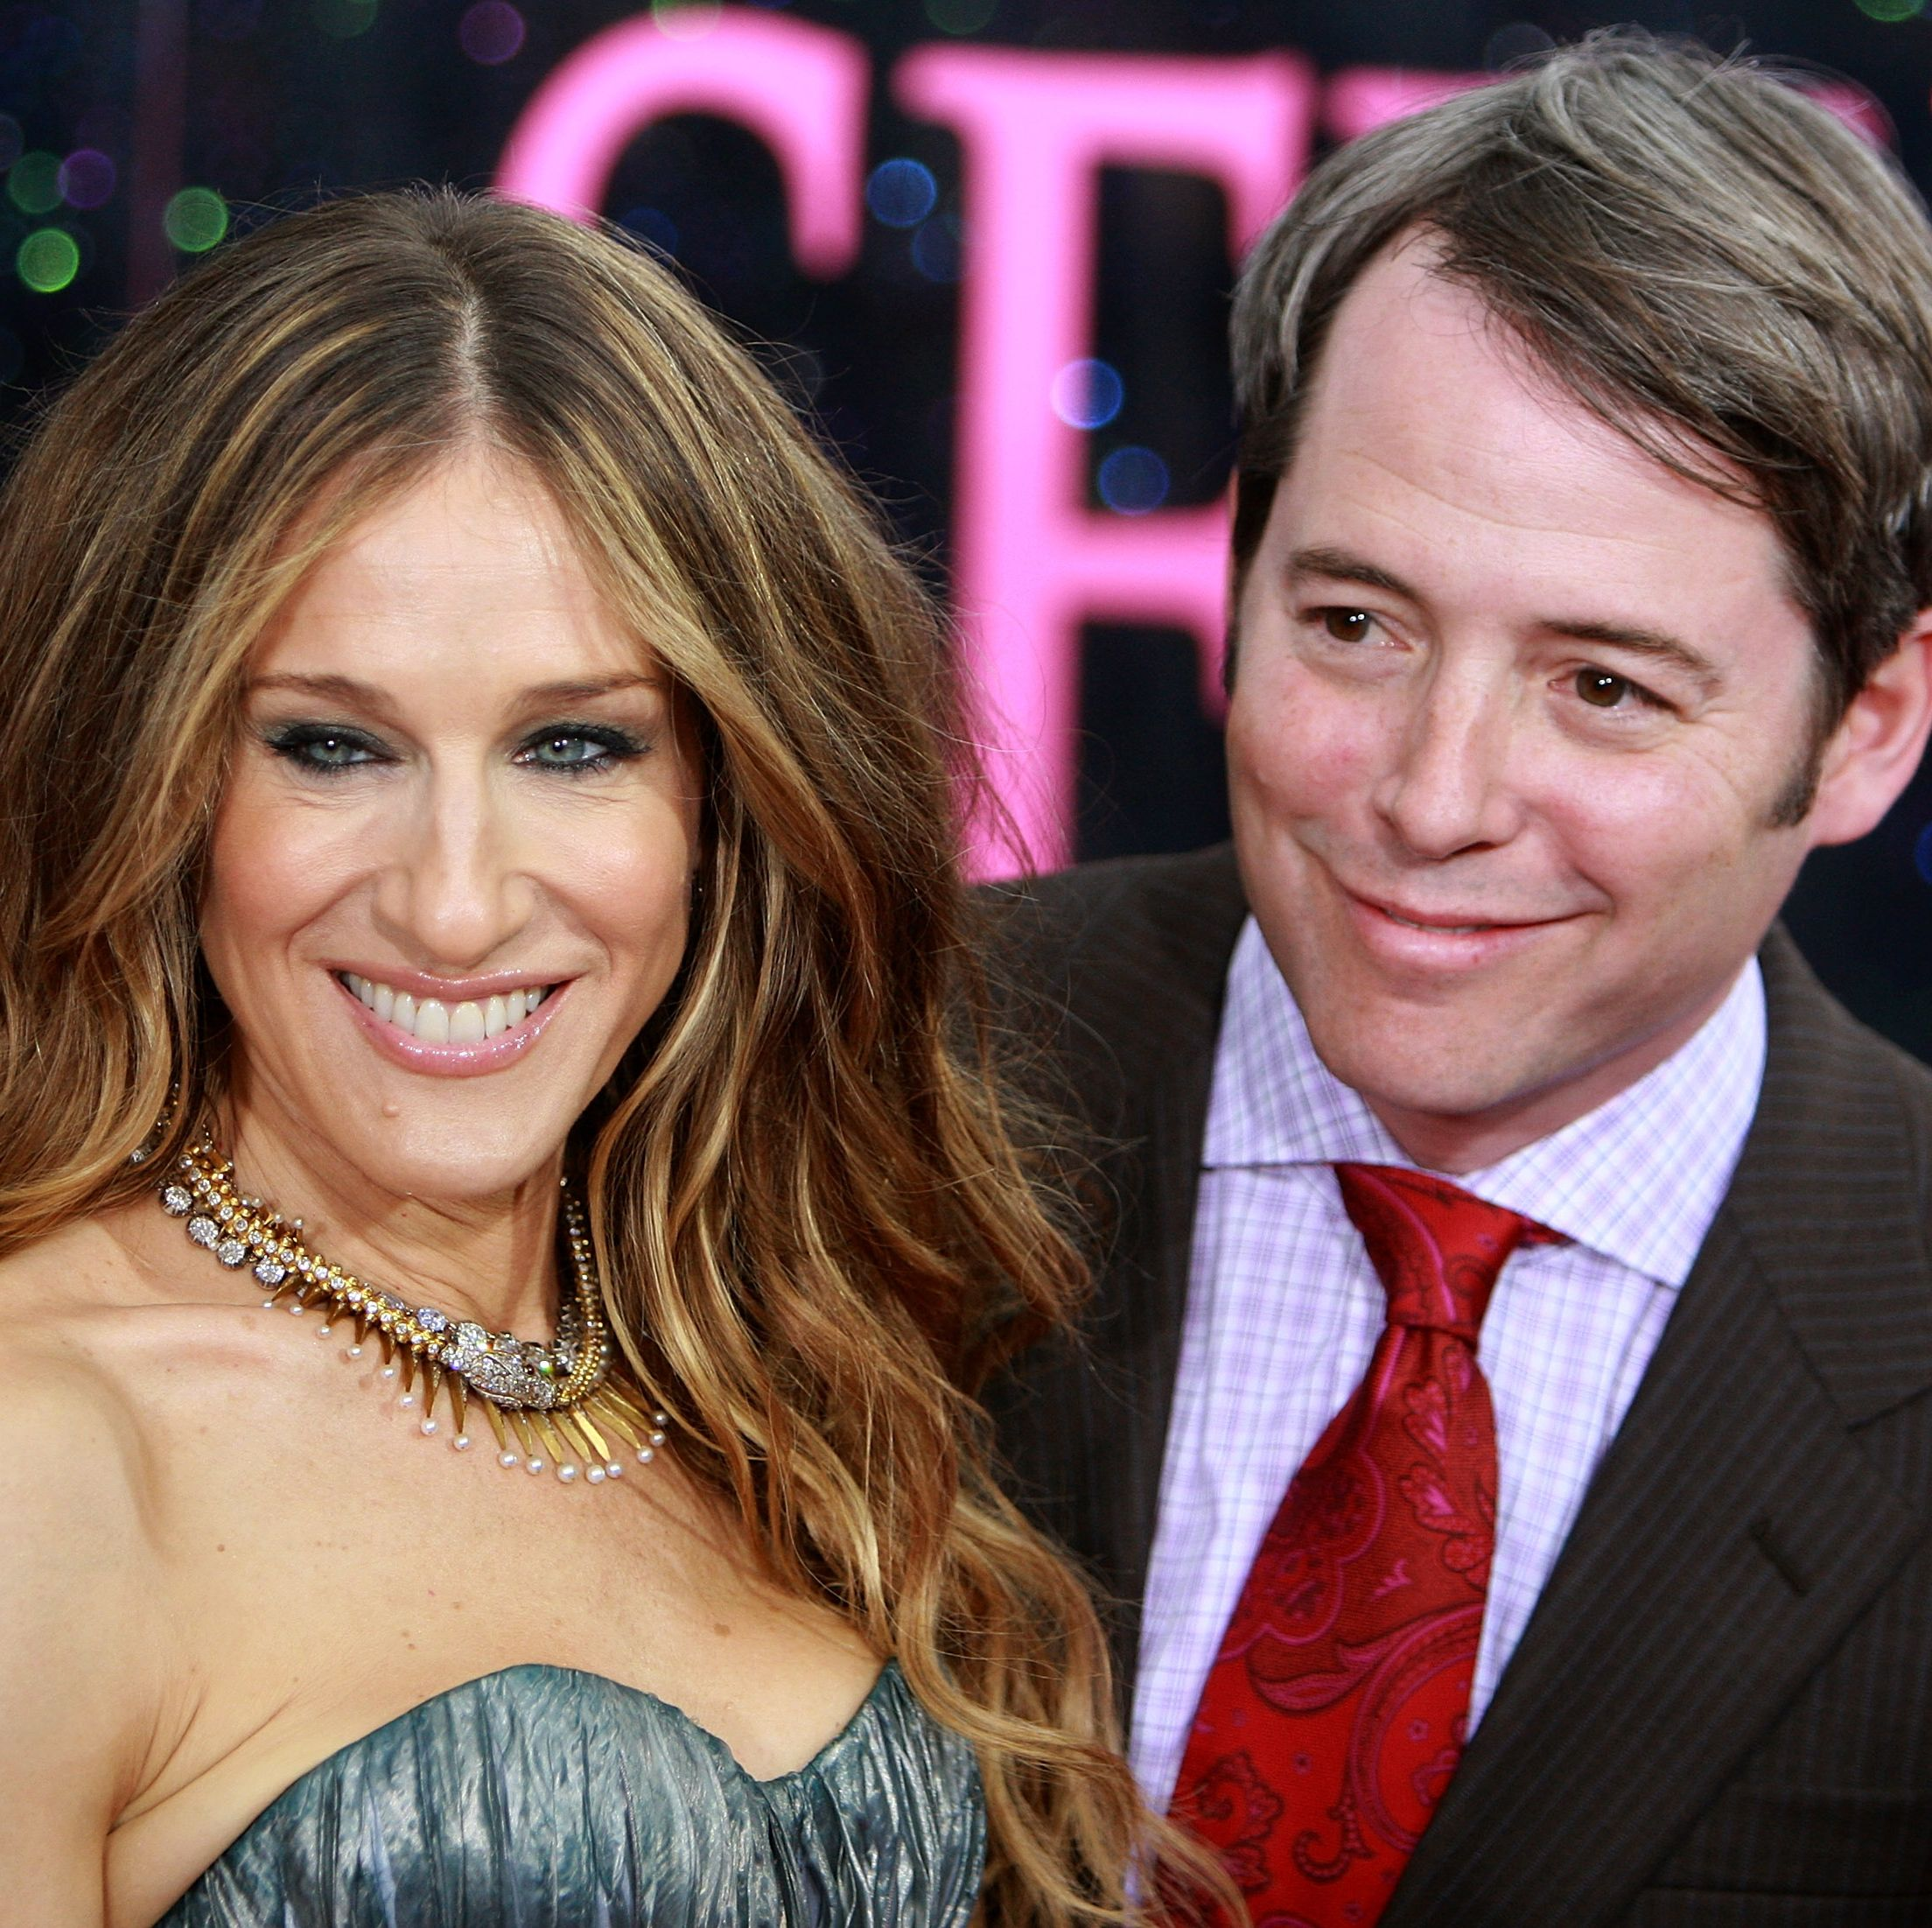 A Reminder That Sarah Jessica Parker and Matthew Broderick's Marriage Is Inspiring